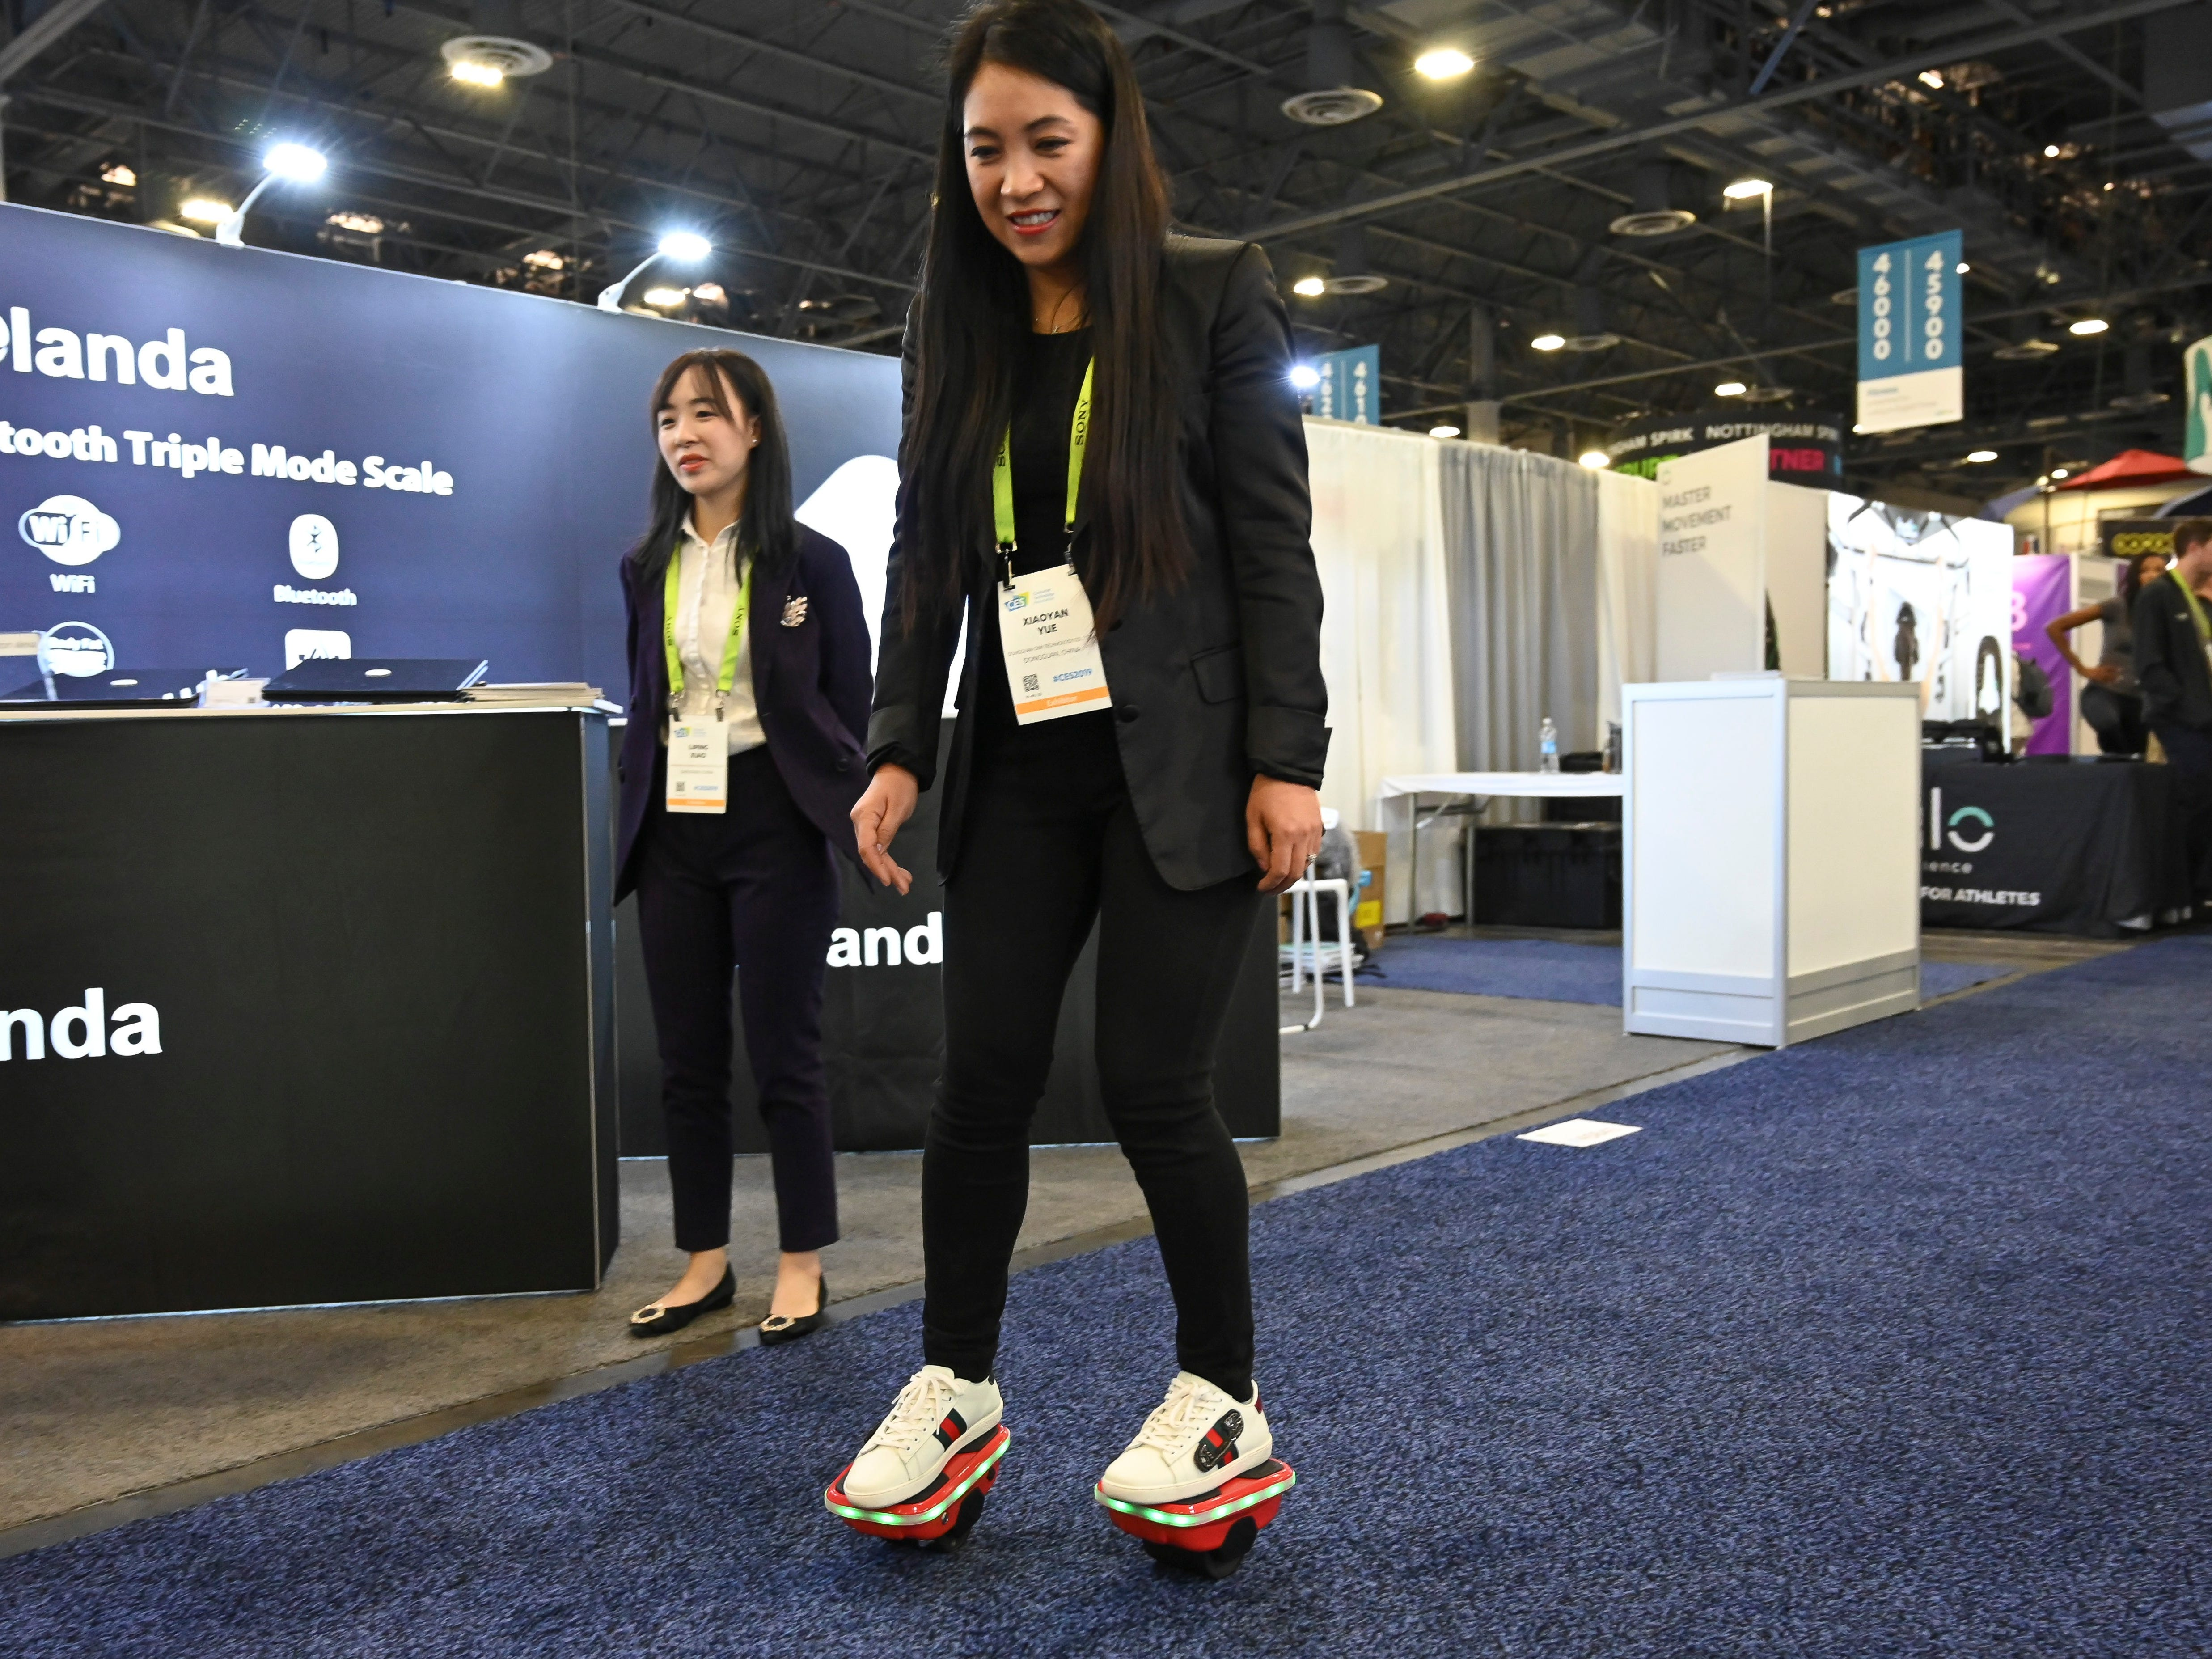 Xiaoyan Yue rides Glare Technology's Hover Shoes.